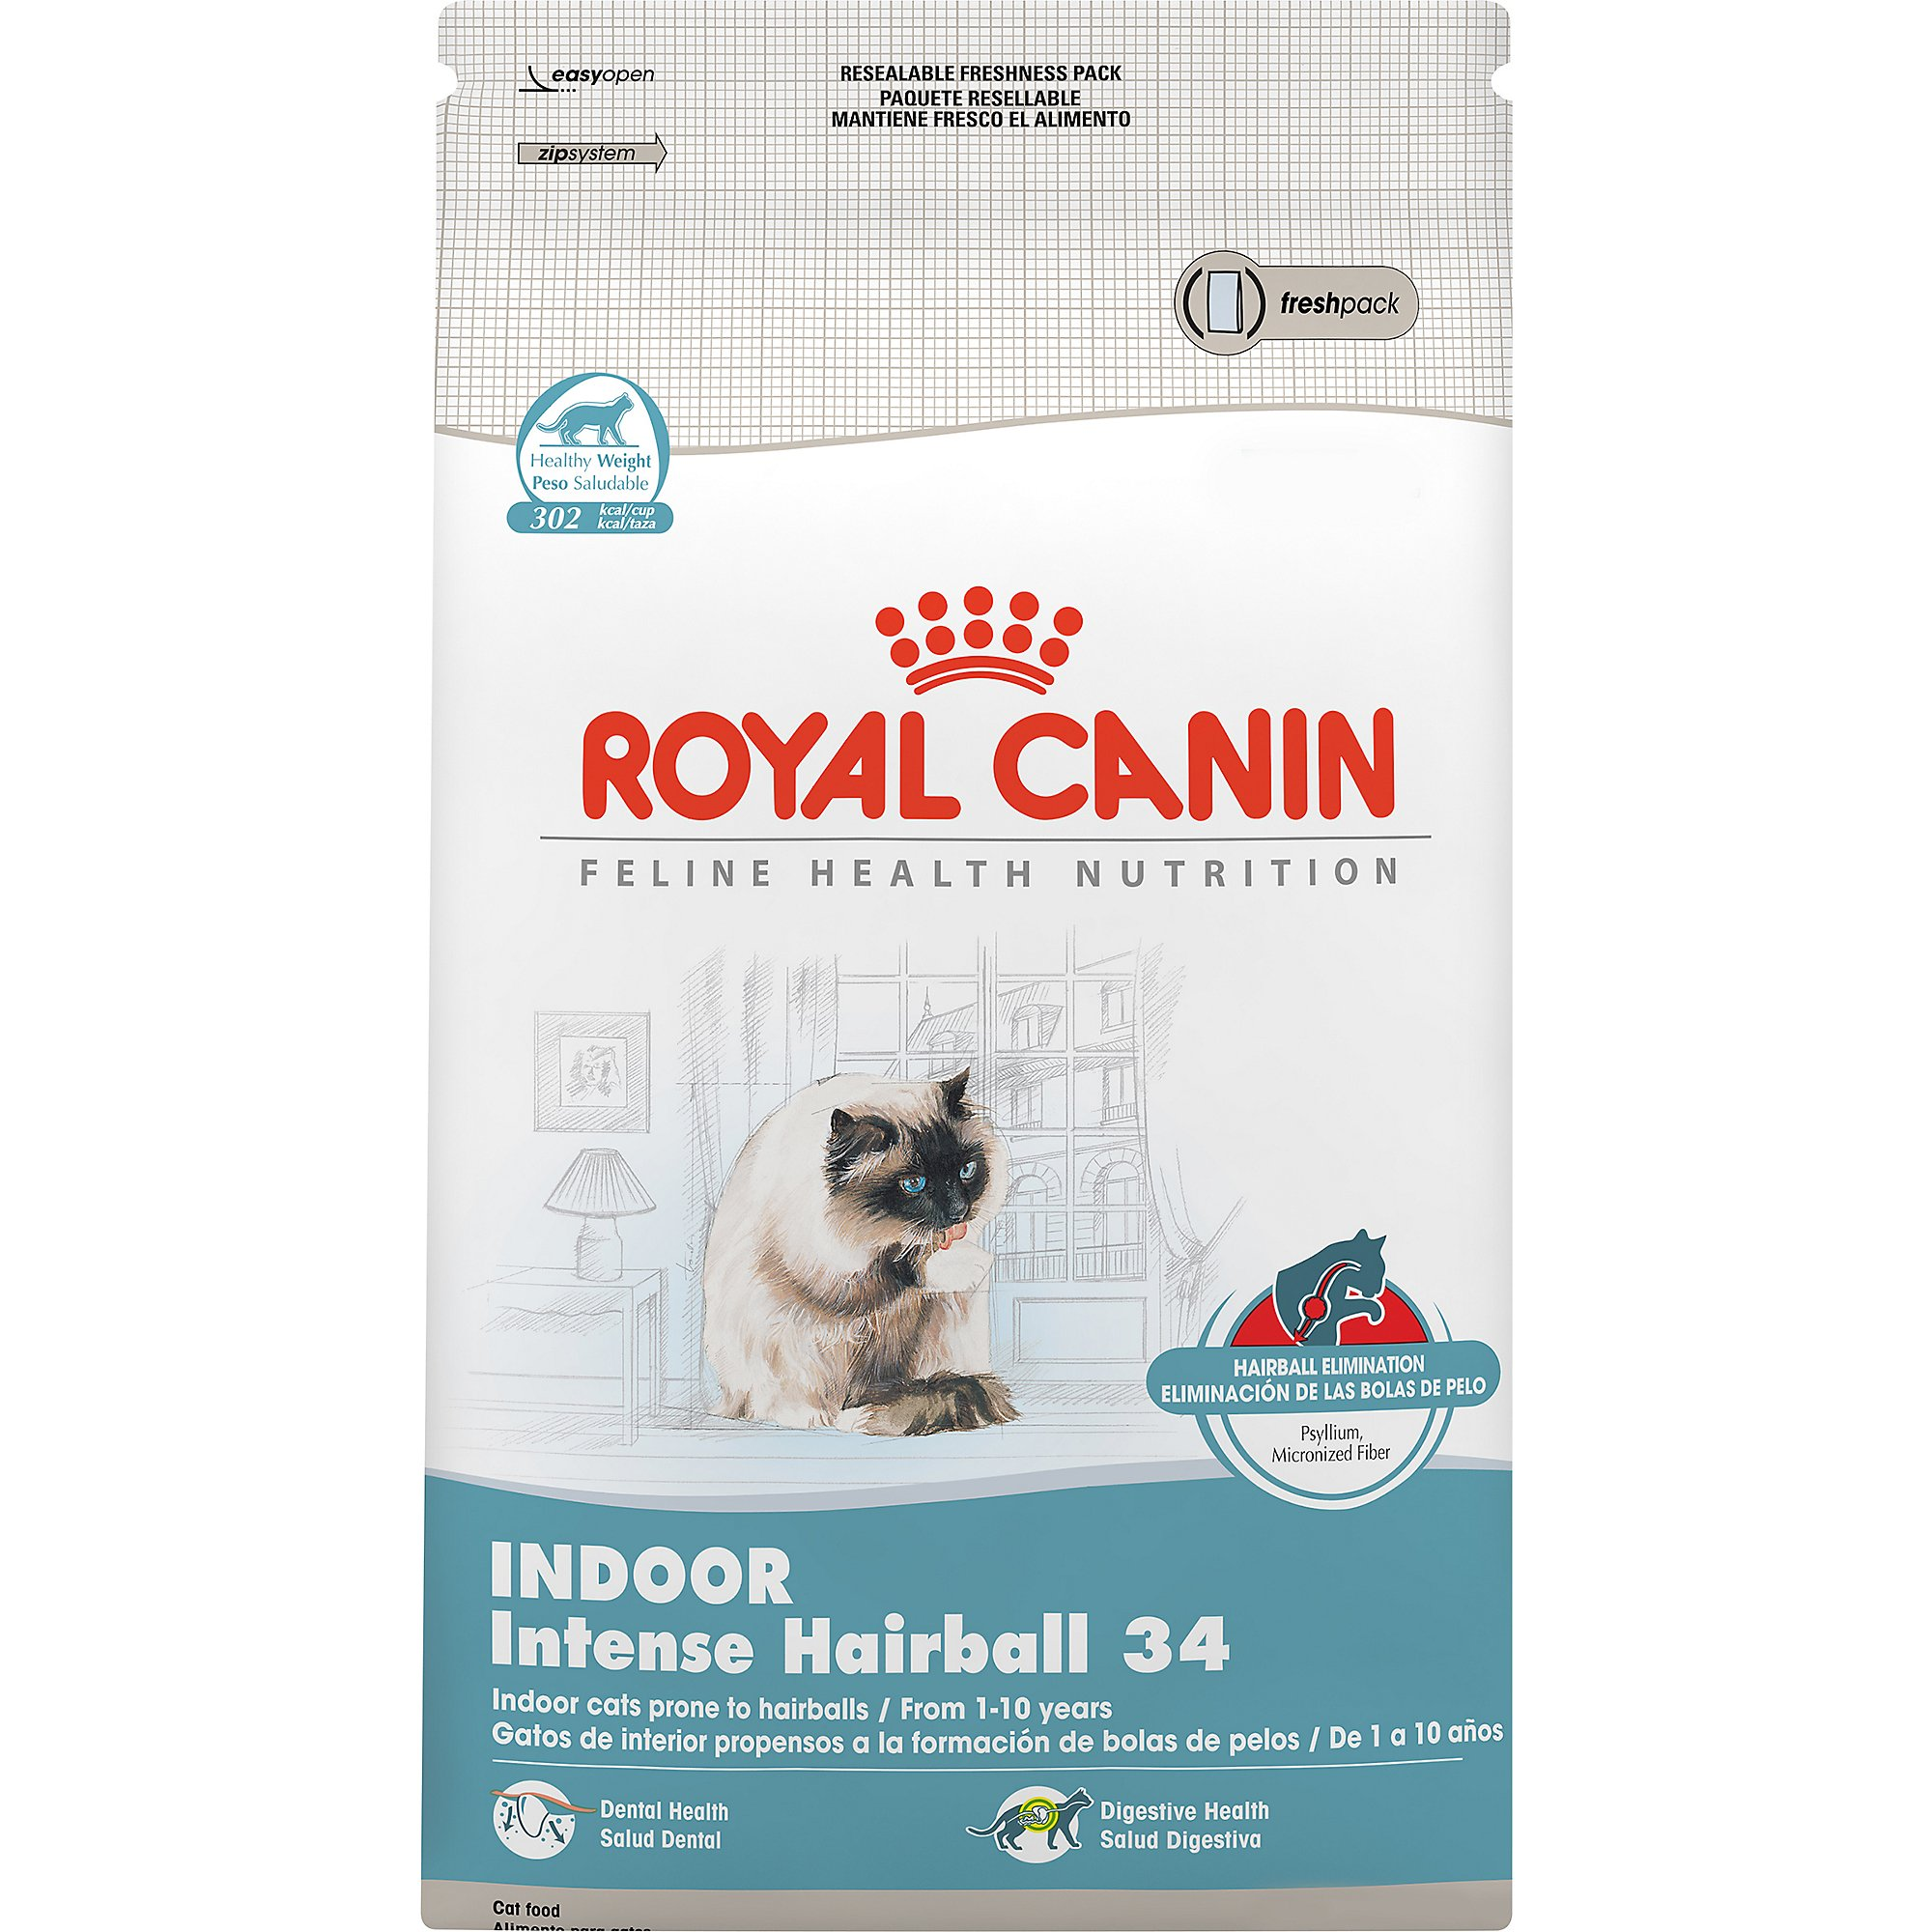 royal canin feline health nutrition indoor intense hairball 34 petco store. Black Bedroom Furniture Sets. Home Design Ideas